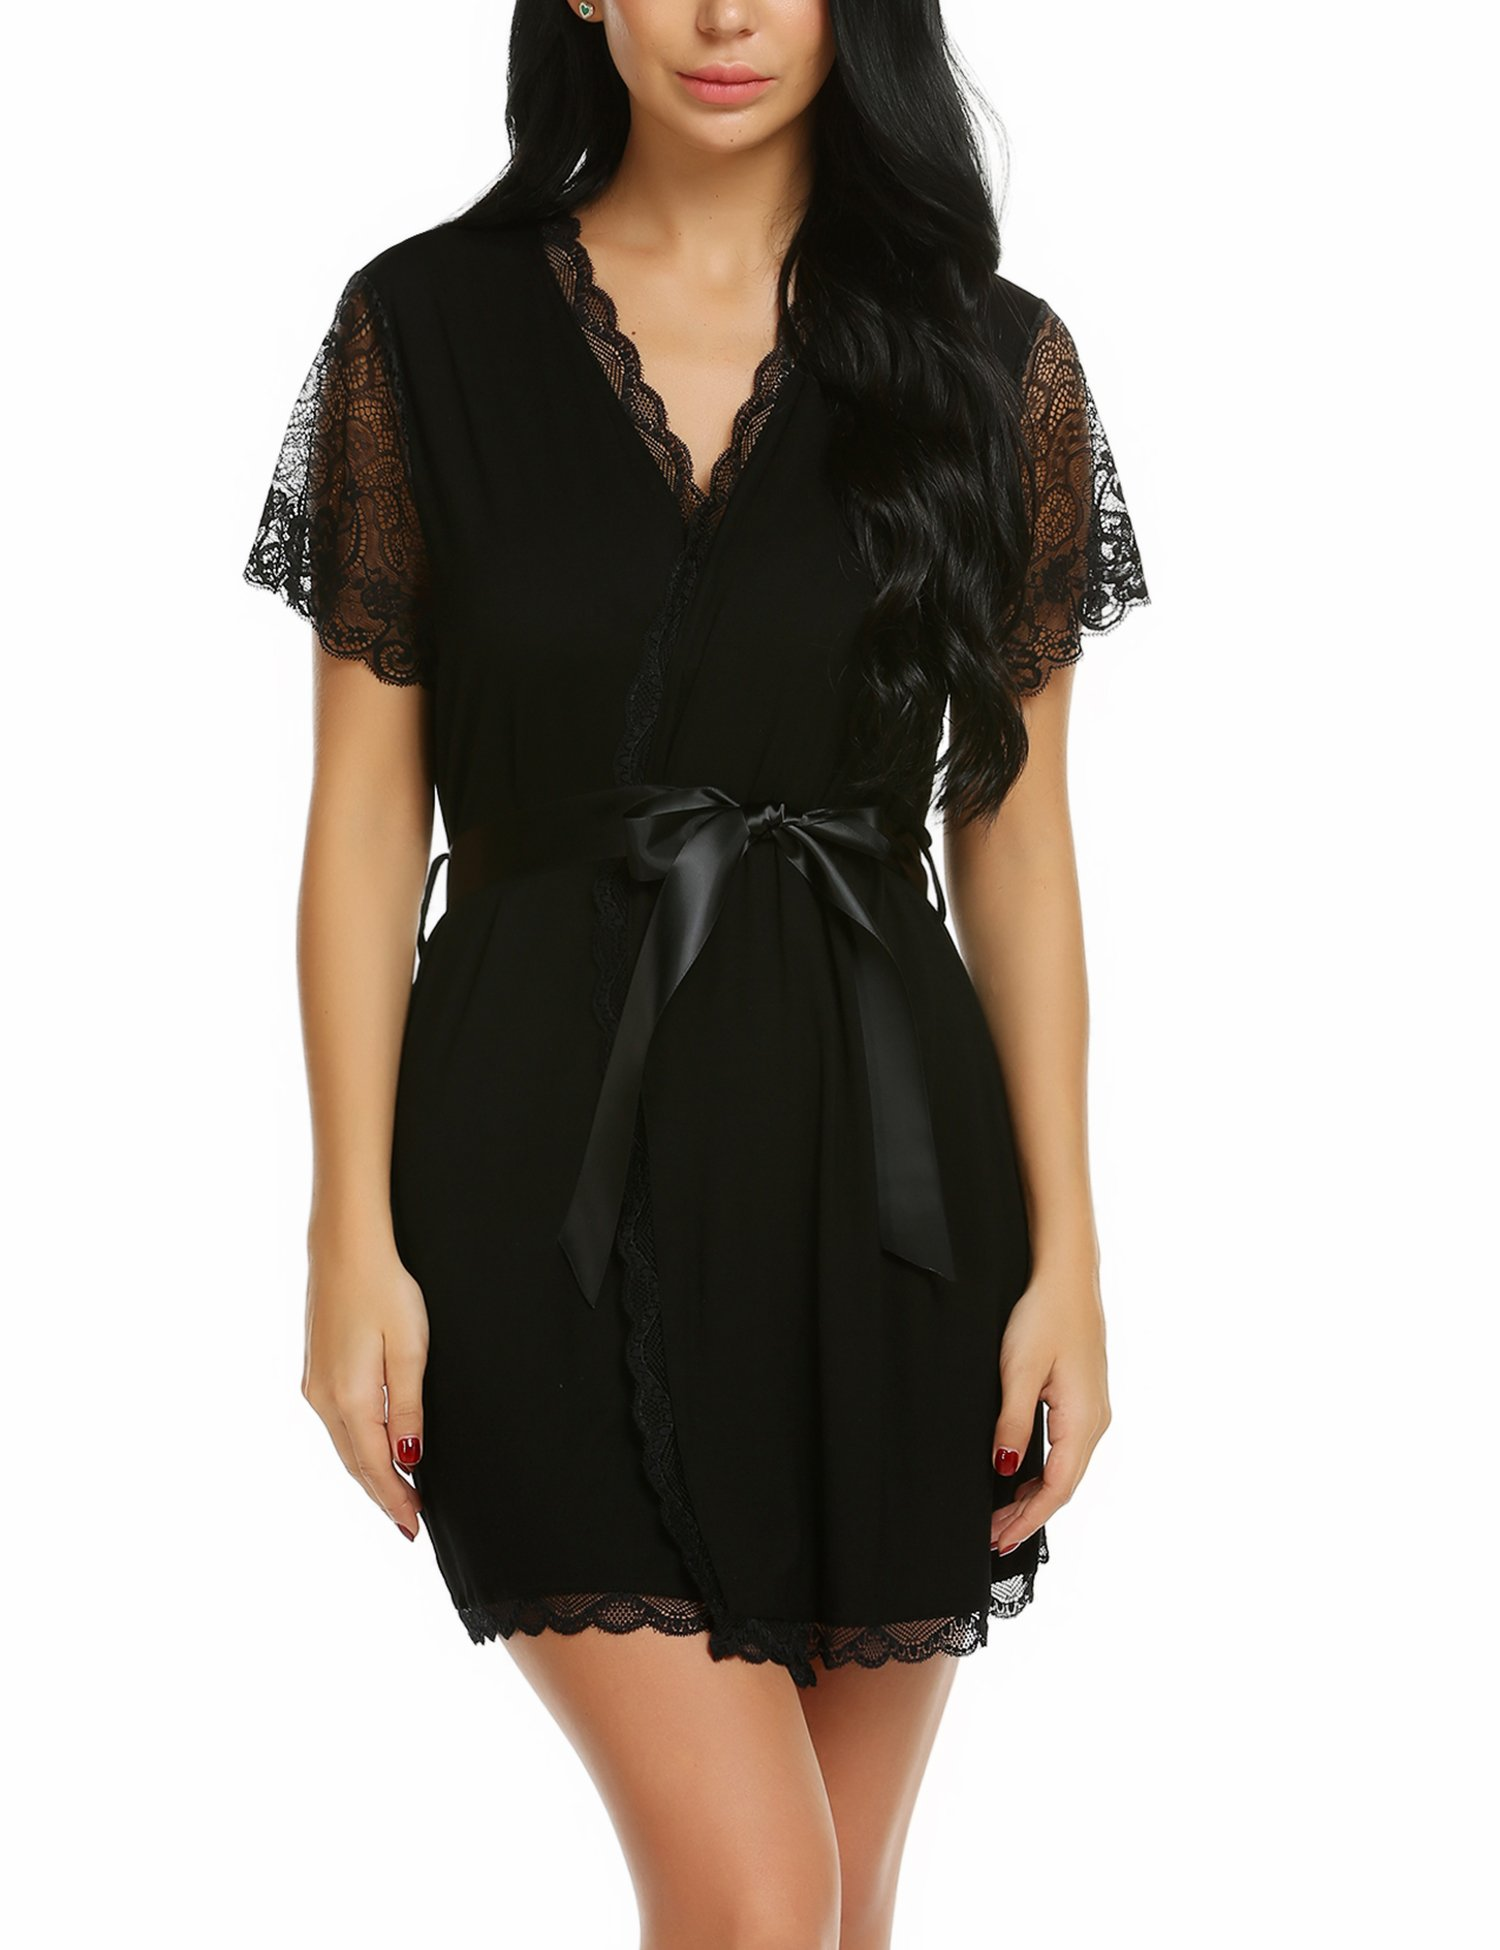 wearella Women Modal Sleepwear Lace Trim Robe Sexy Chemise Floral Nightgown V Neck Babydoll Short Style with Oblique V-Neck Robe